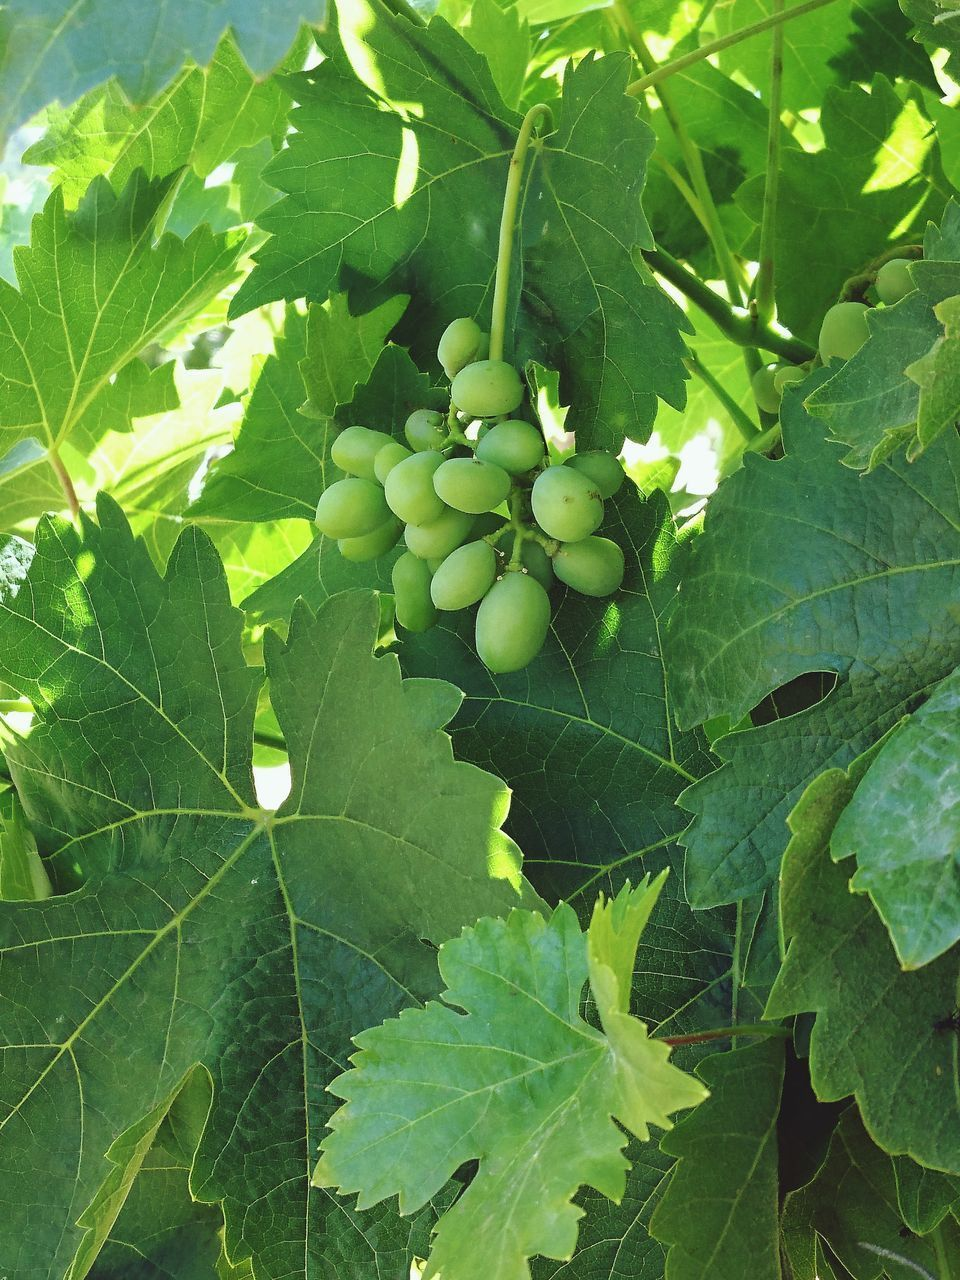 CLOSE-UP OF GRAPES ON TREE